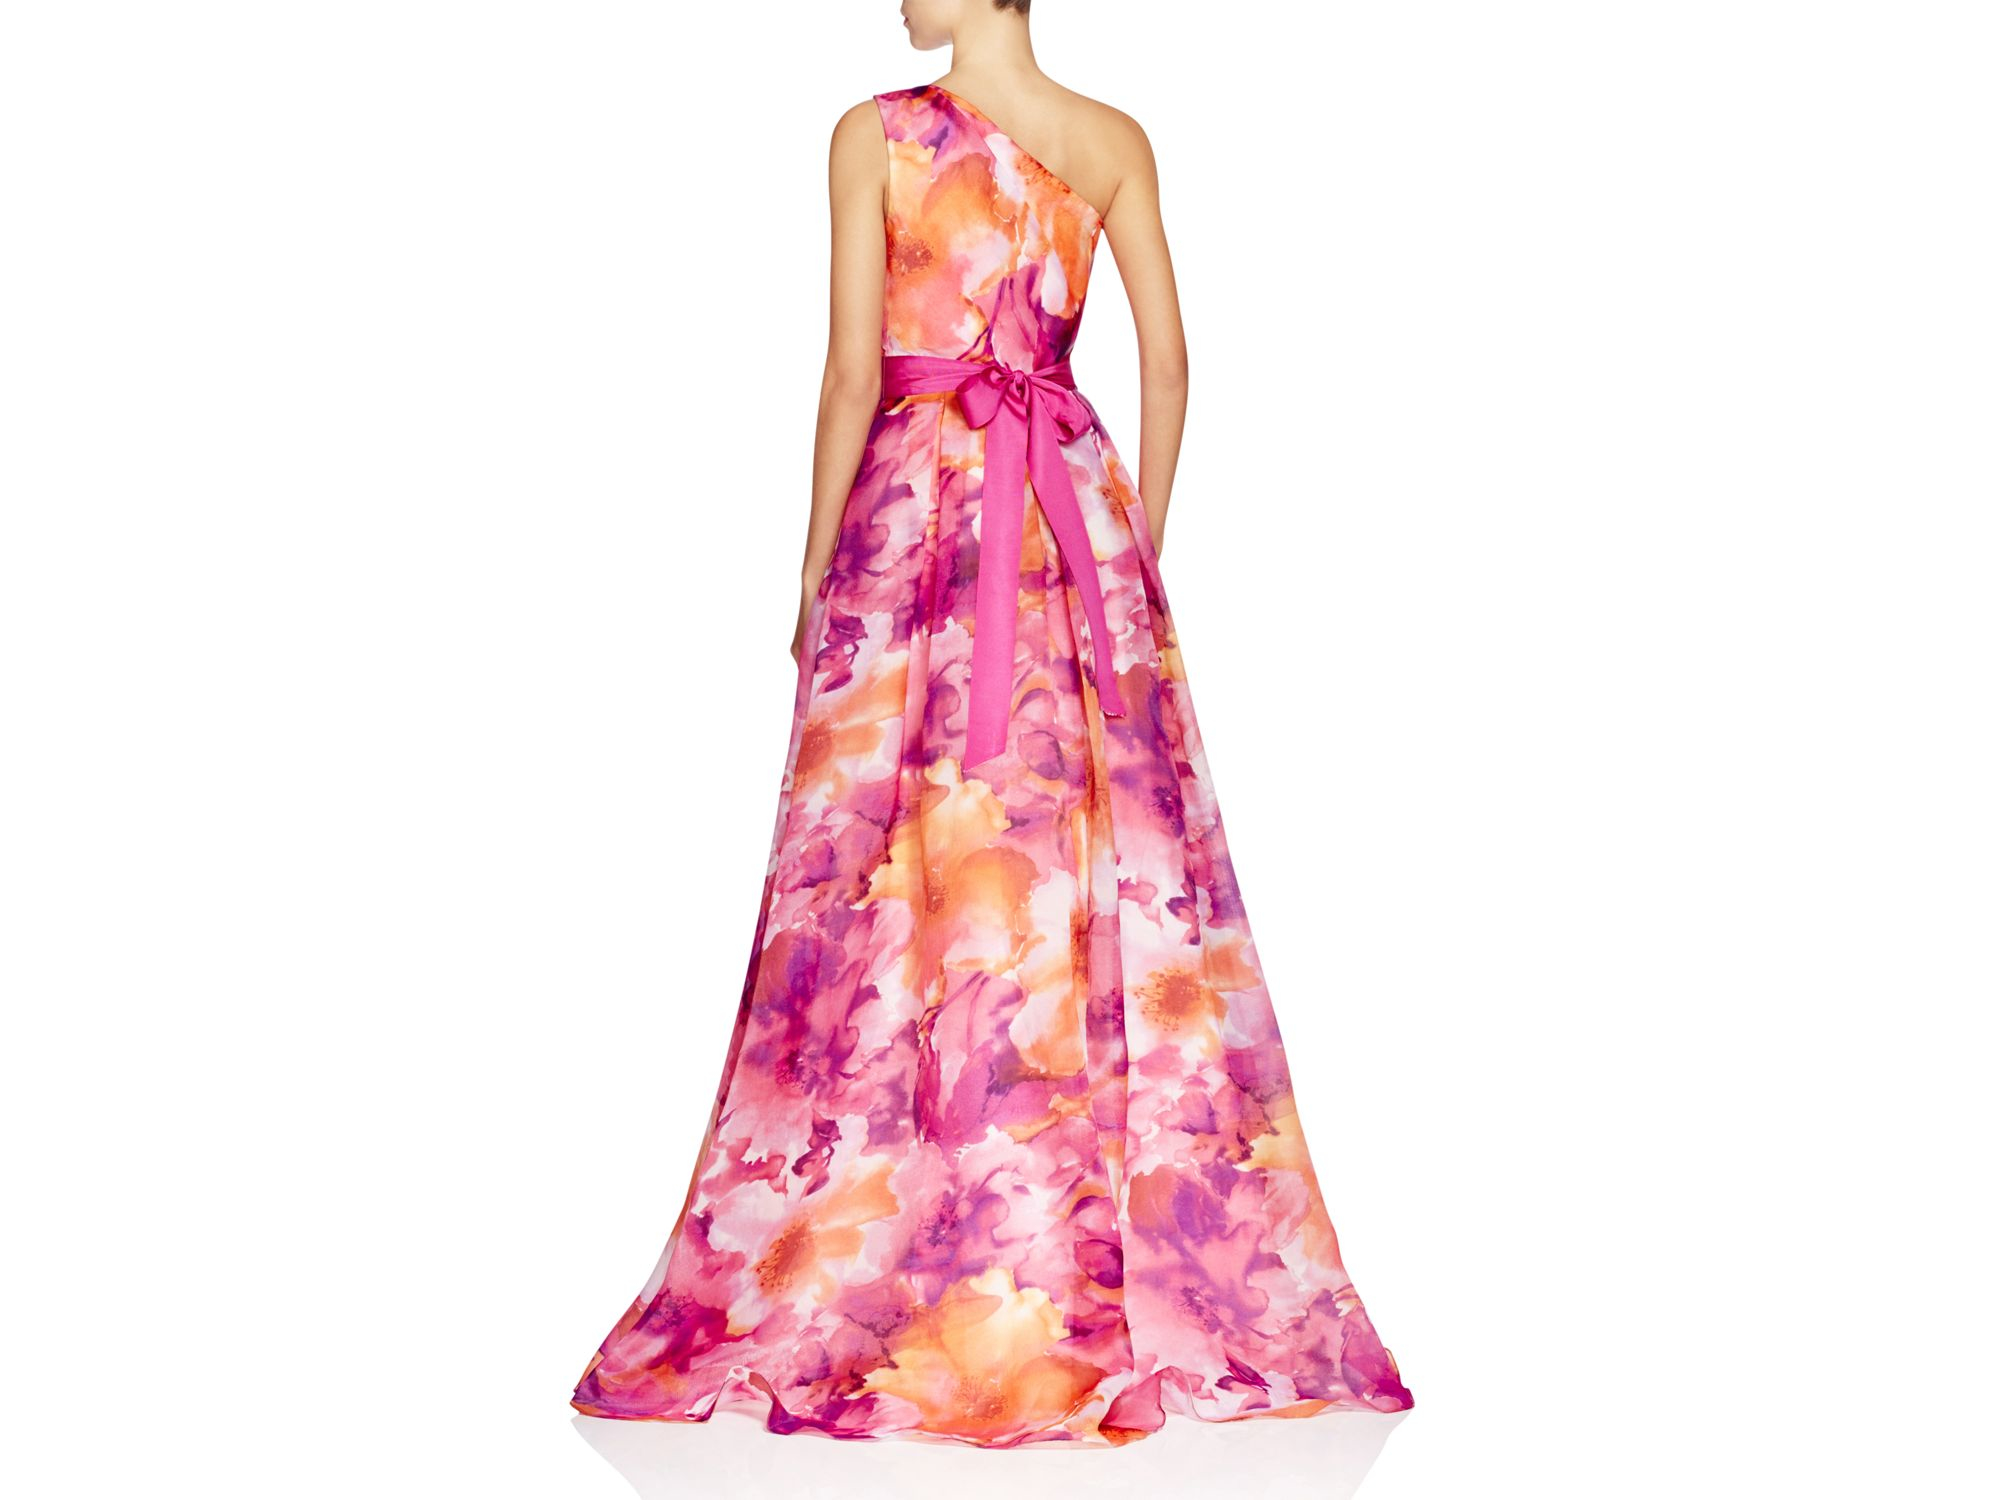 Lyst - Carmen Marc Valvo One Shoulder Floral Print Gown in Orange